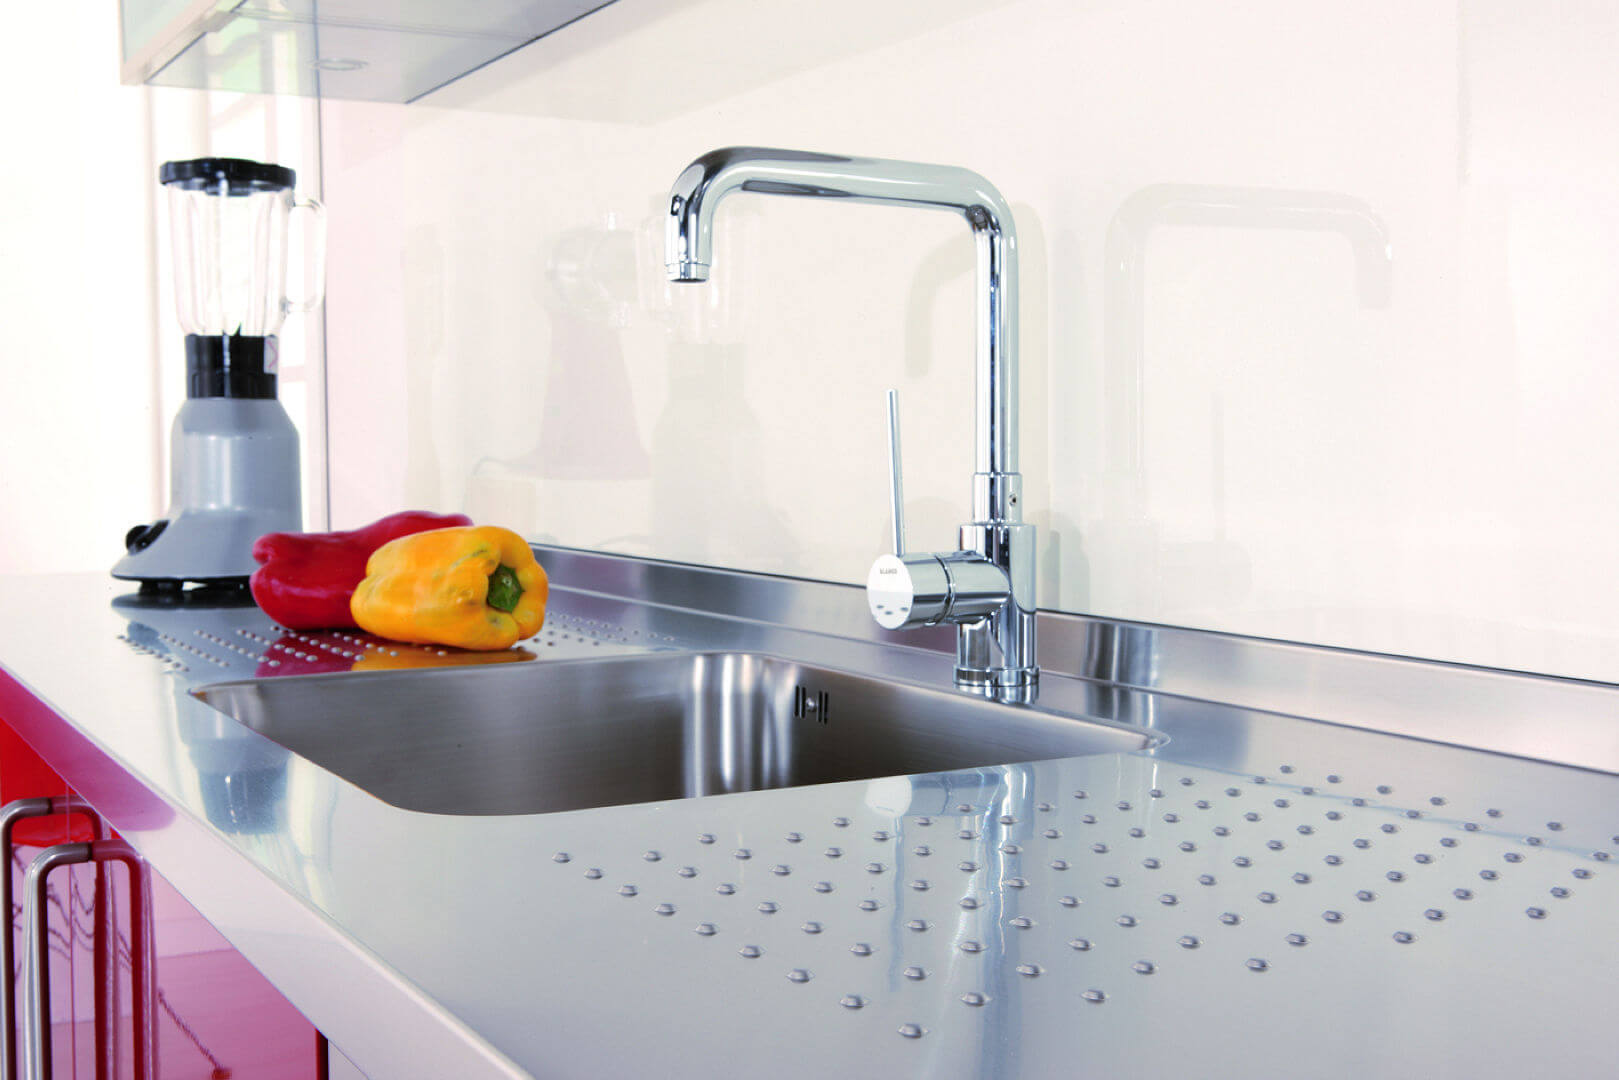 Arca Cucine Italy - Domestic stainless steel kitchens - 13 - Gourmet - Sink